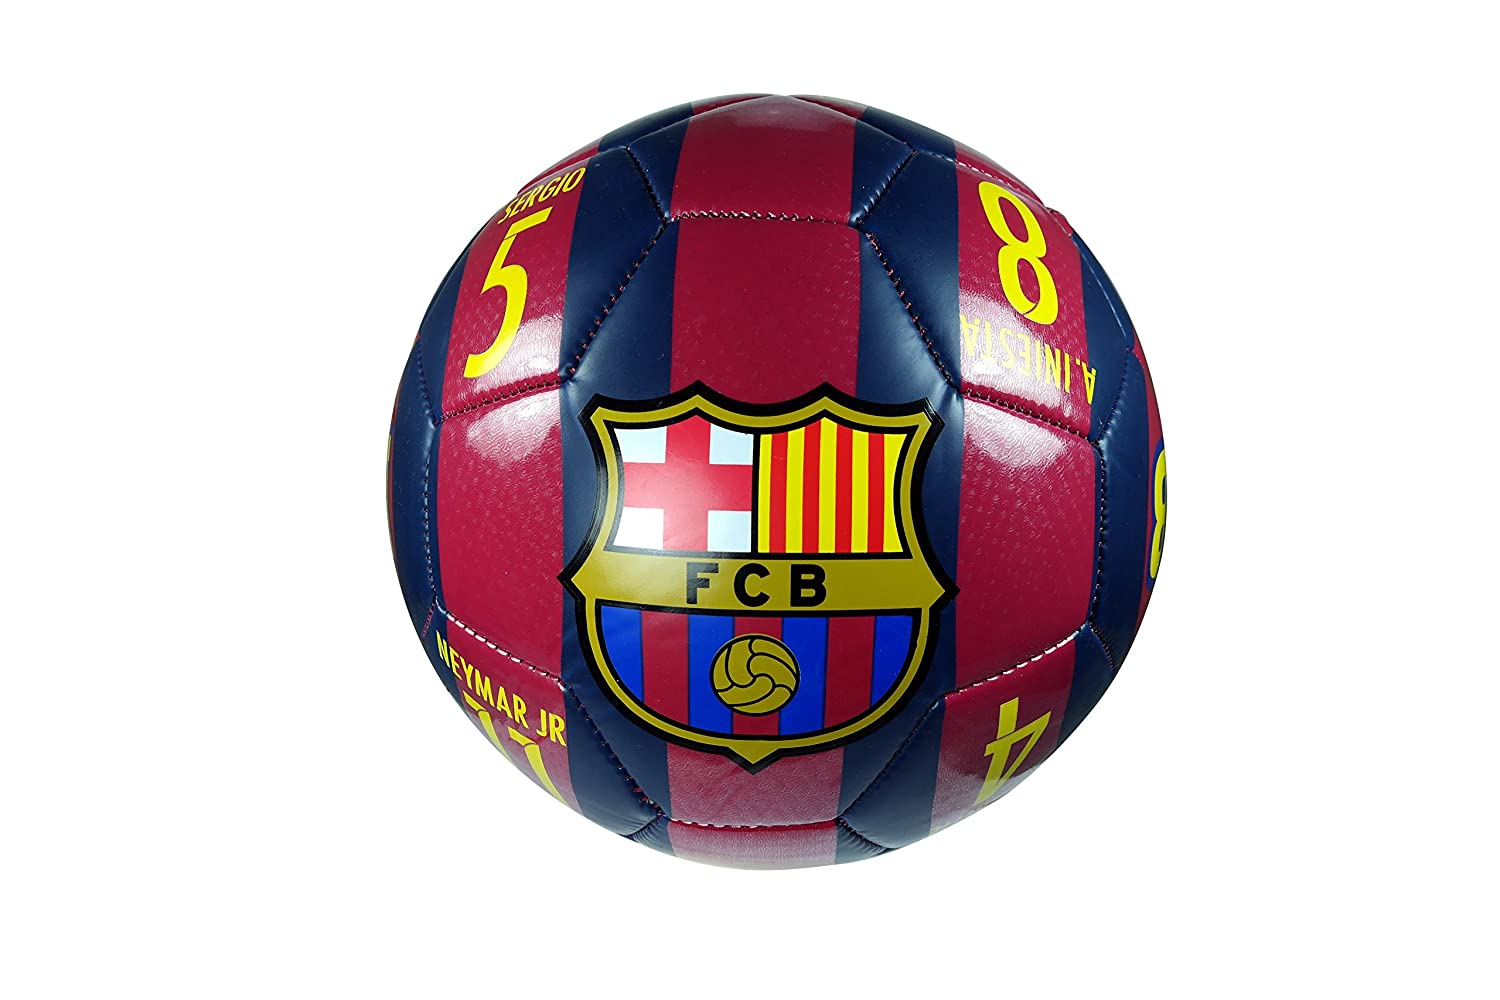 FC Barcelona Authentic Official Licensedサッカーボールサイズ4 – 01 – 5 B0765LQD4Q